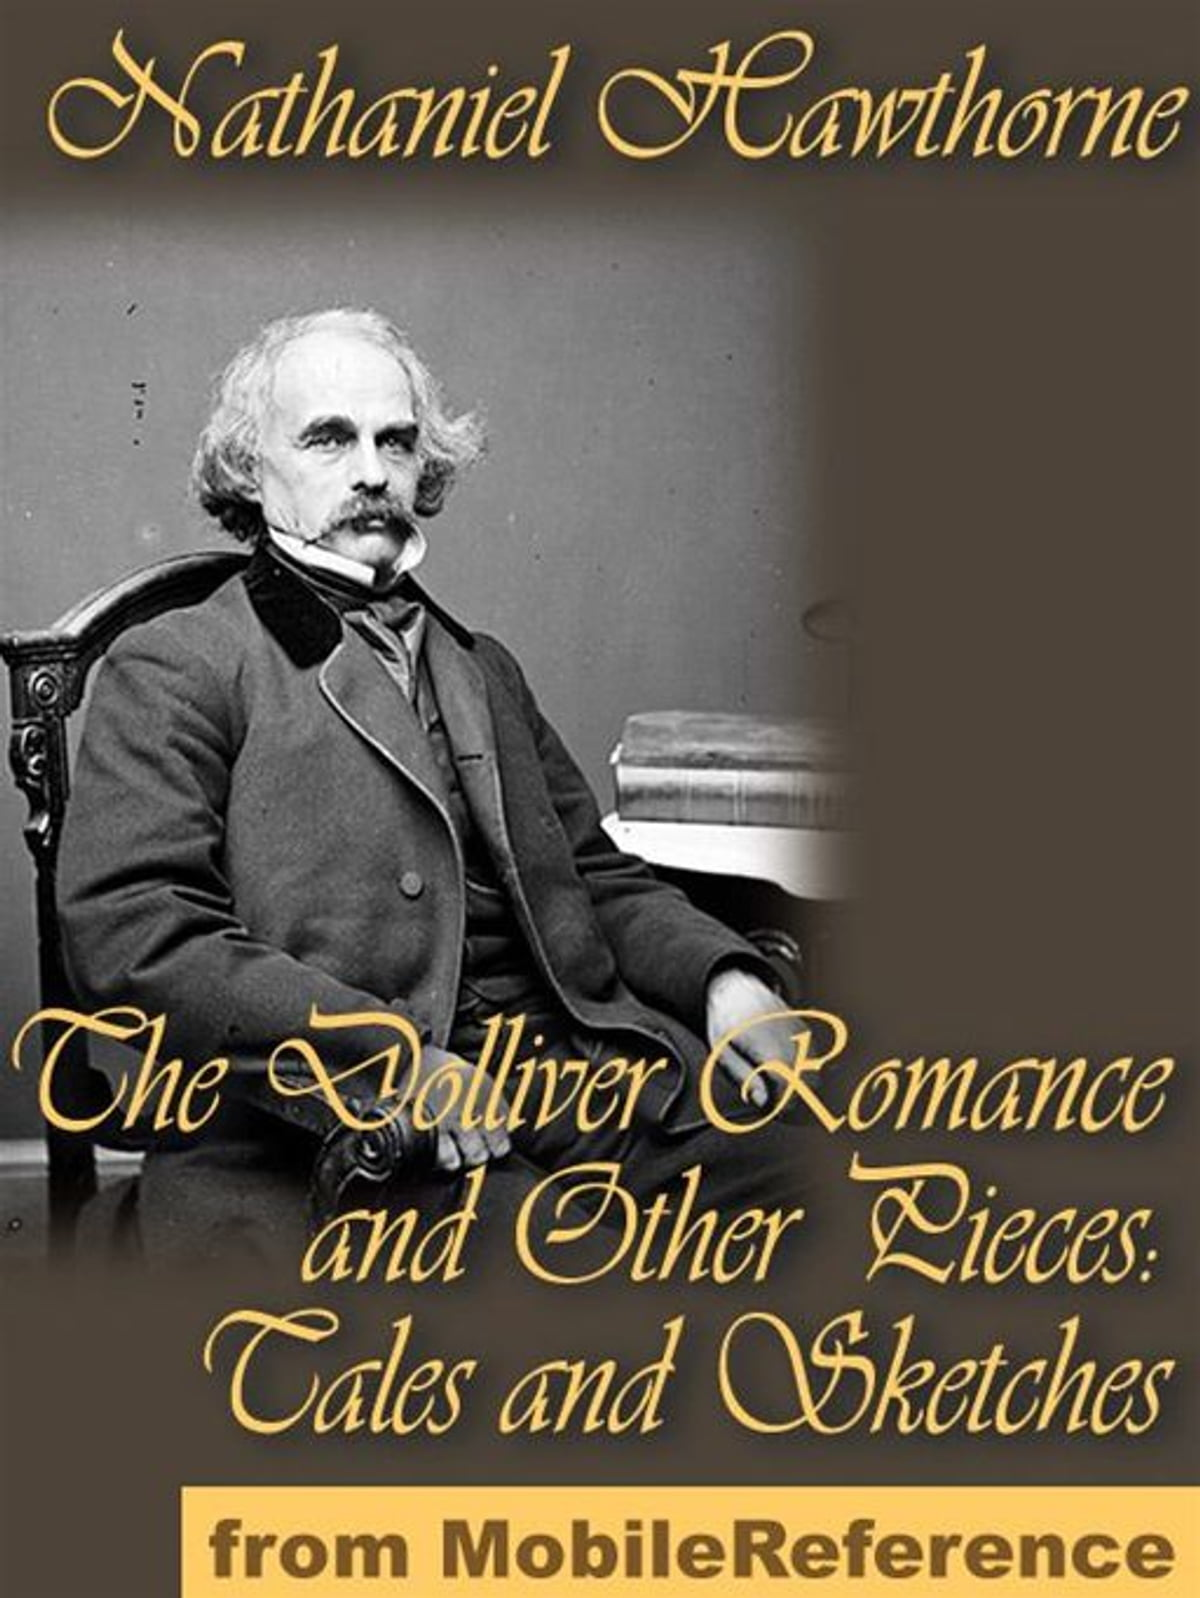 Chronological Bibliography: Nathaniel Hawthorne